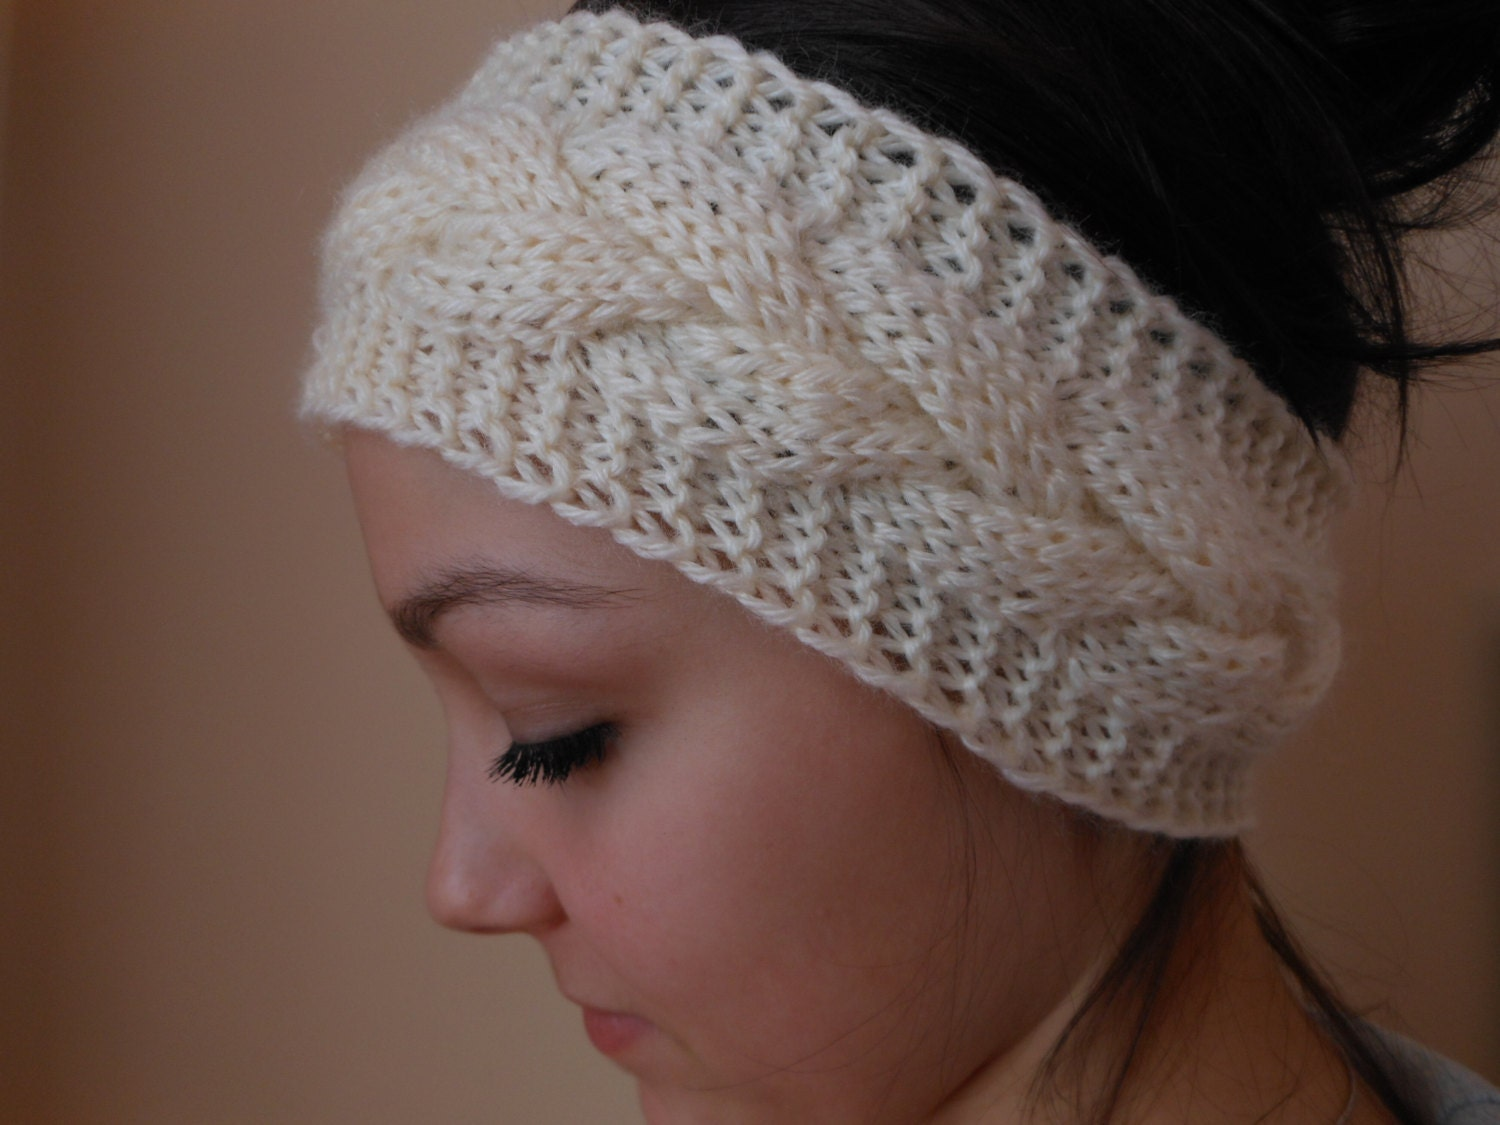 Knitted Ear Warmer Pattern : Knit Cable Headband Ear Warmer Head Warmer Cream